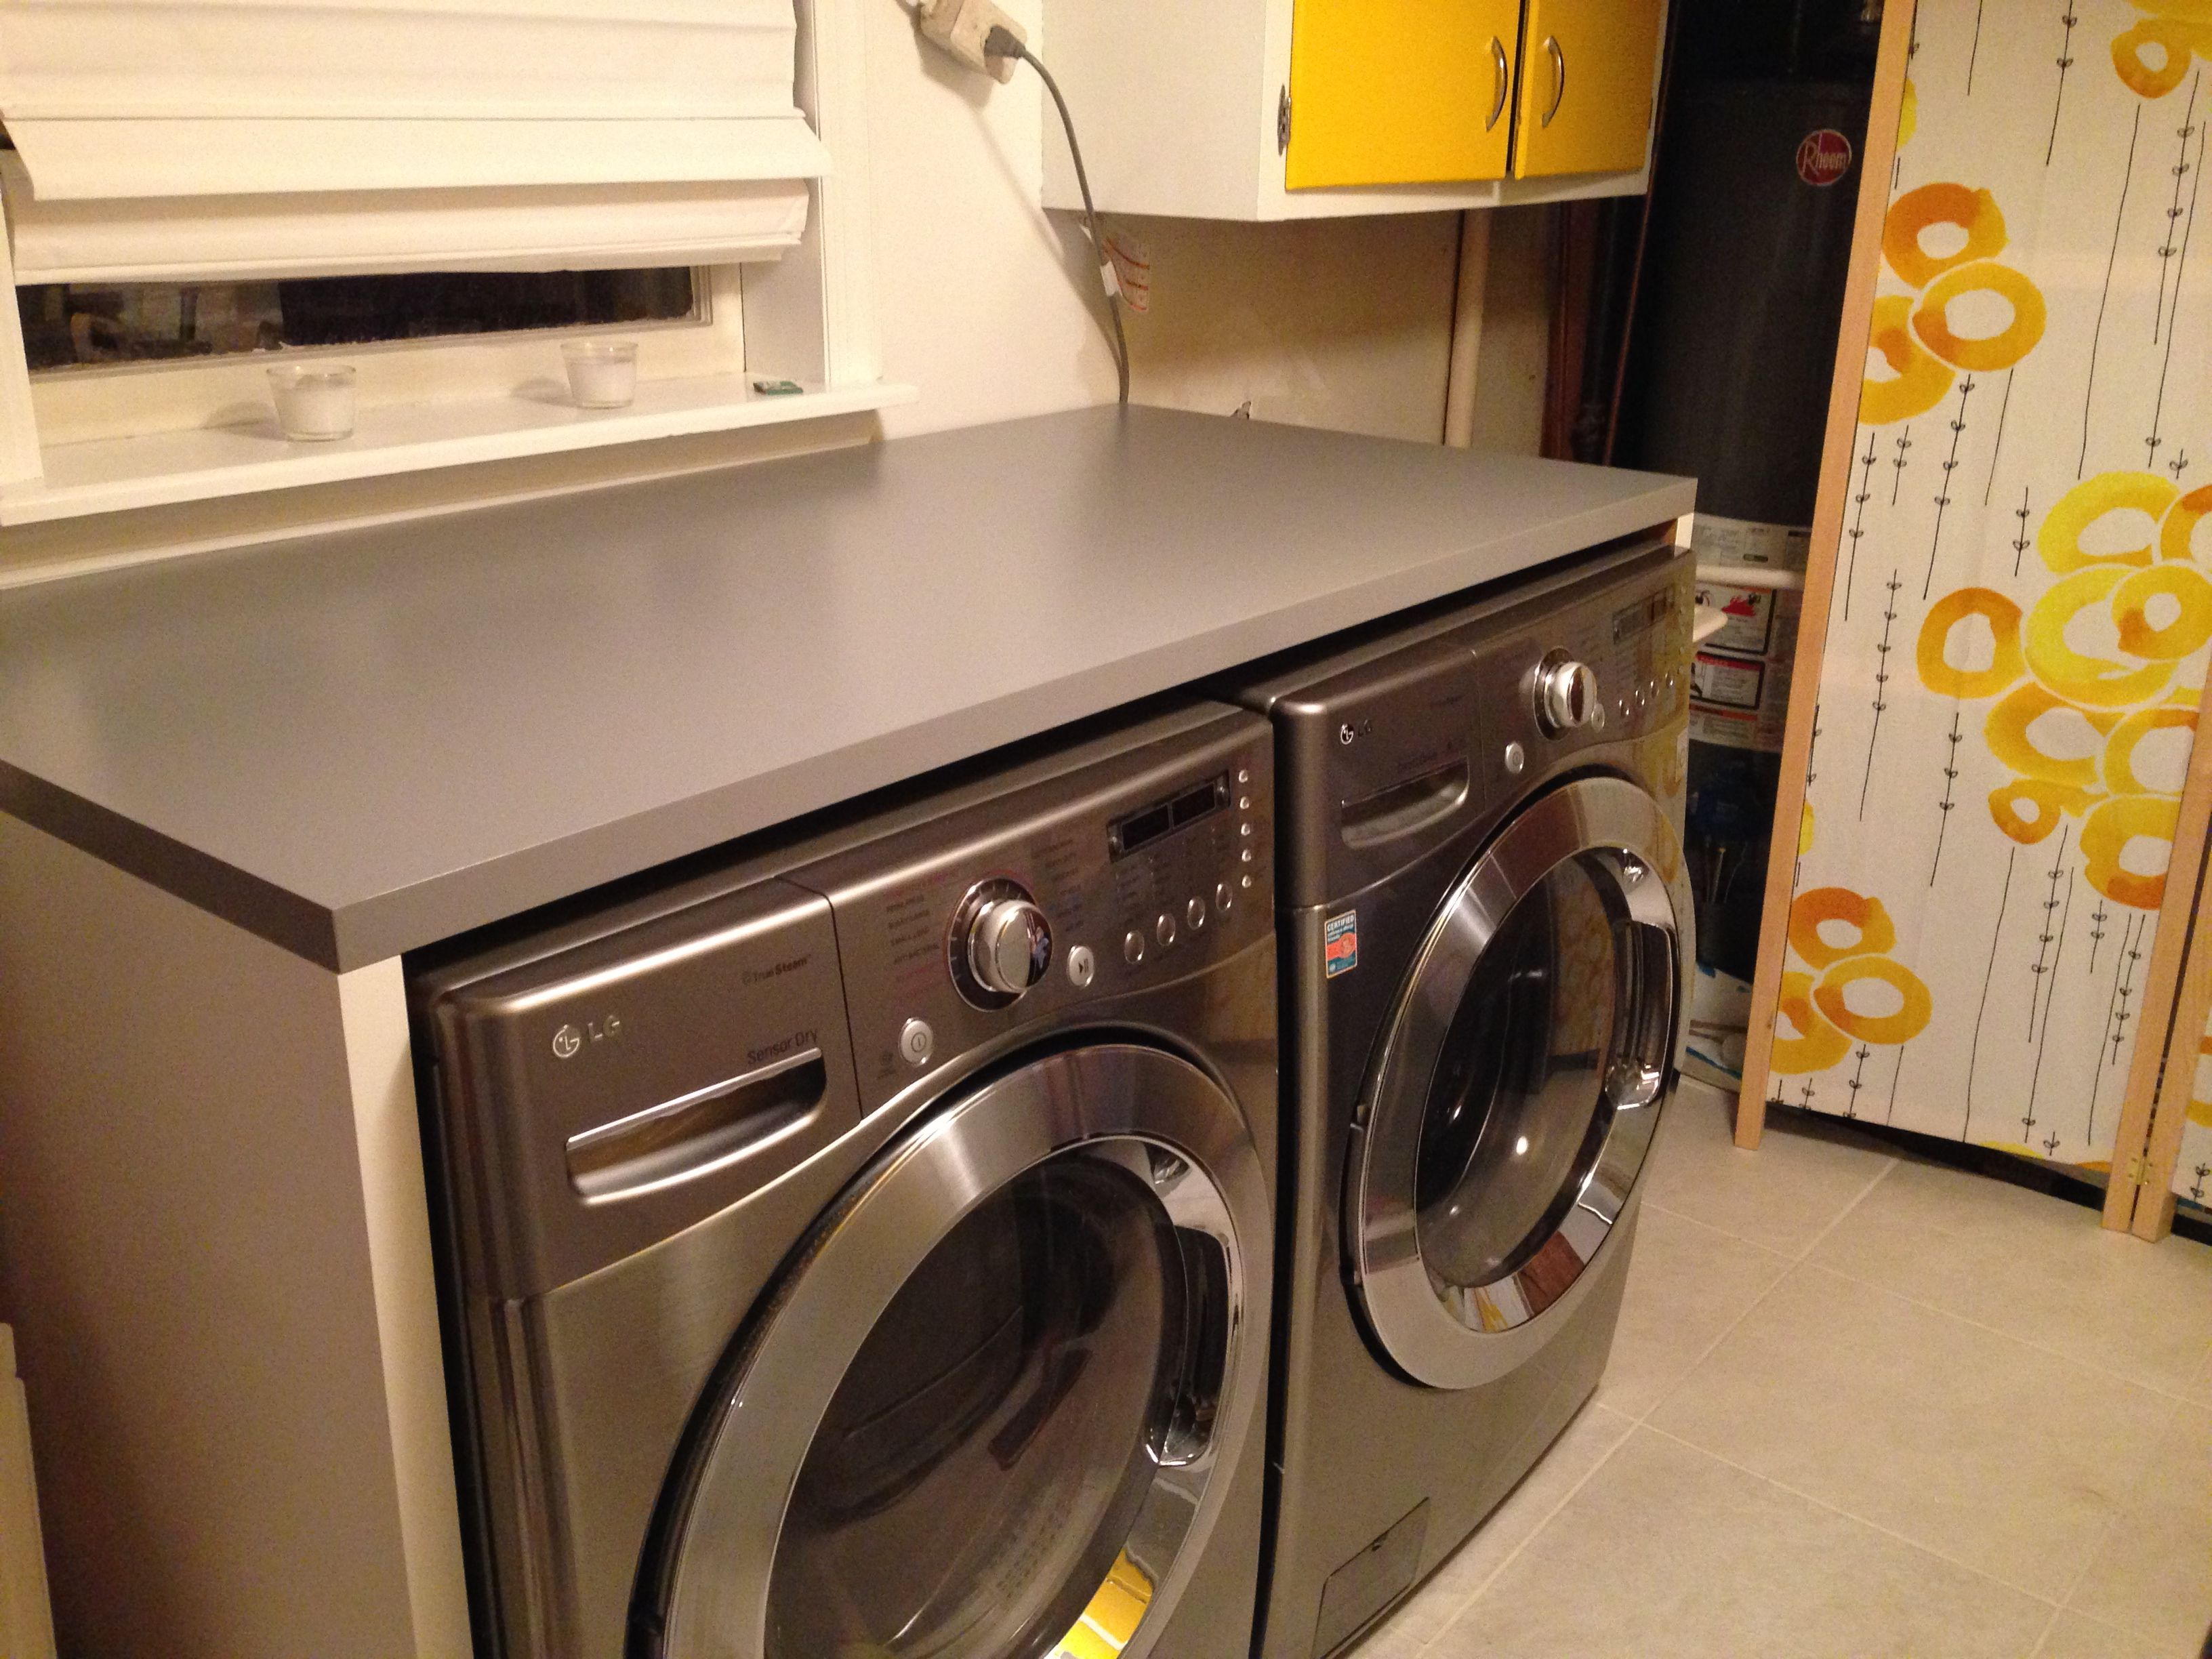 How To Install Ikea Countertops Ikea Linnmon Tabletops To Build Counter Around Washer And